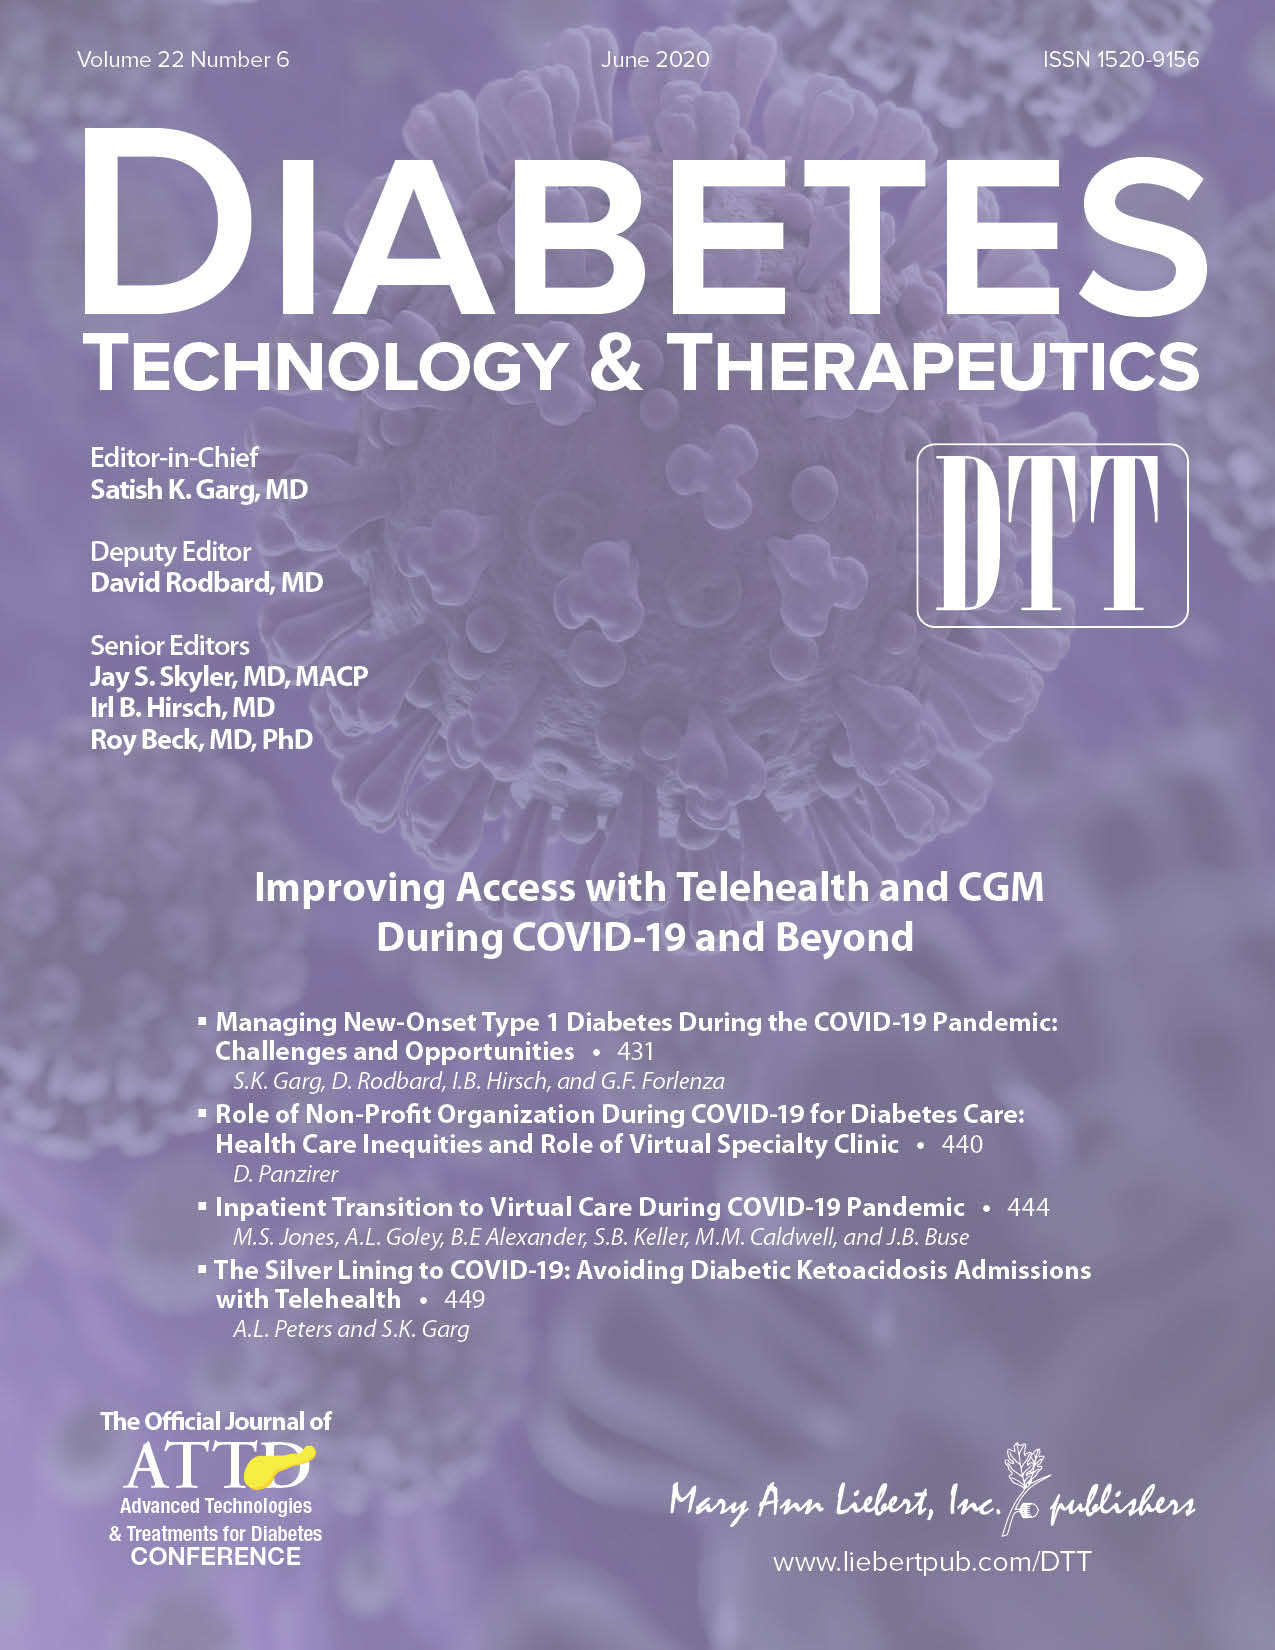 Diabetes Technology & Therapeutics